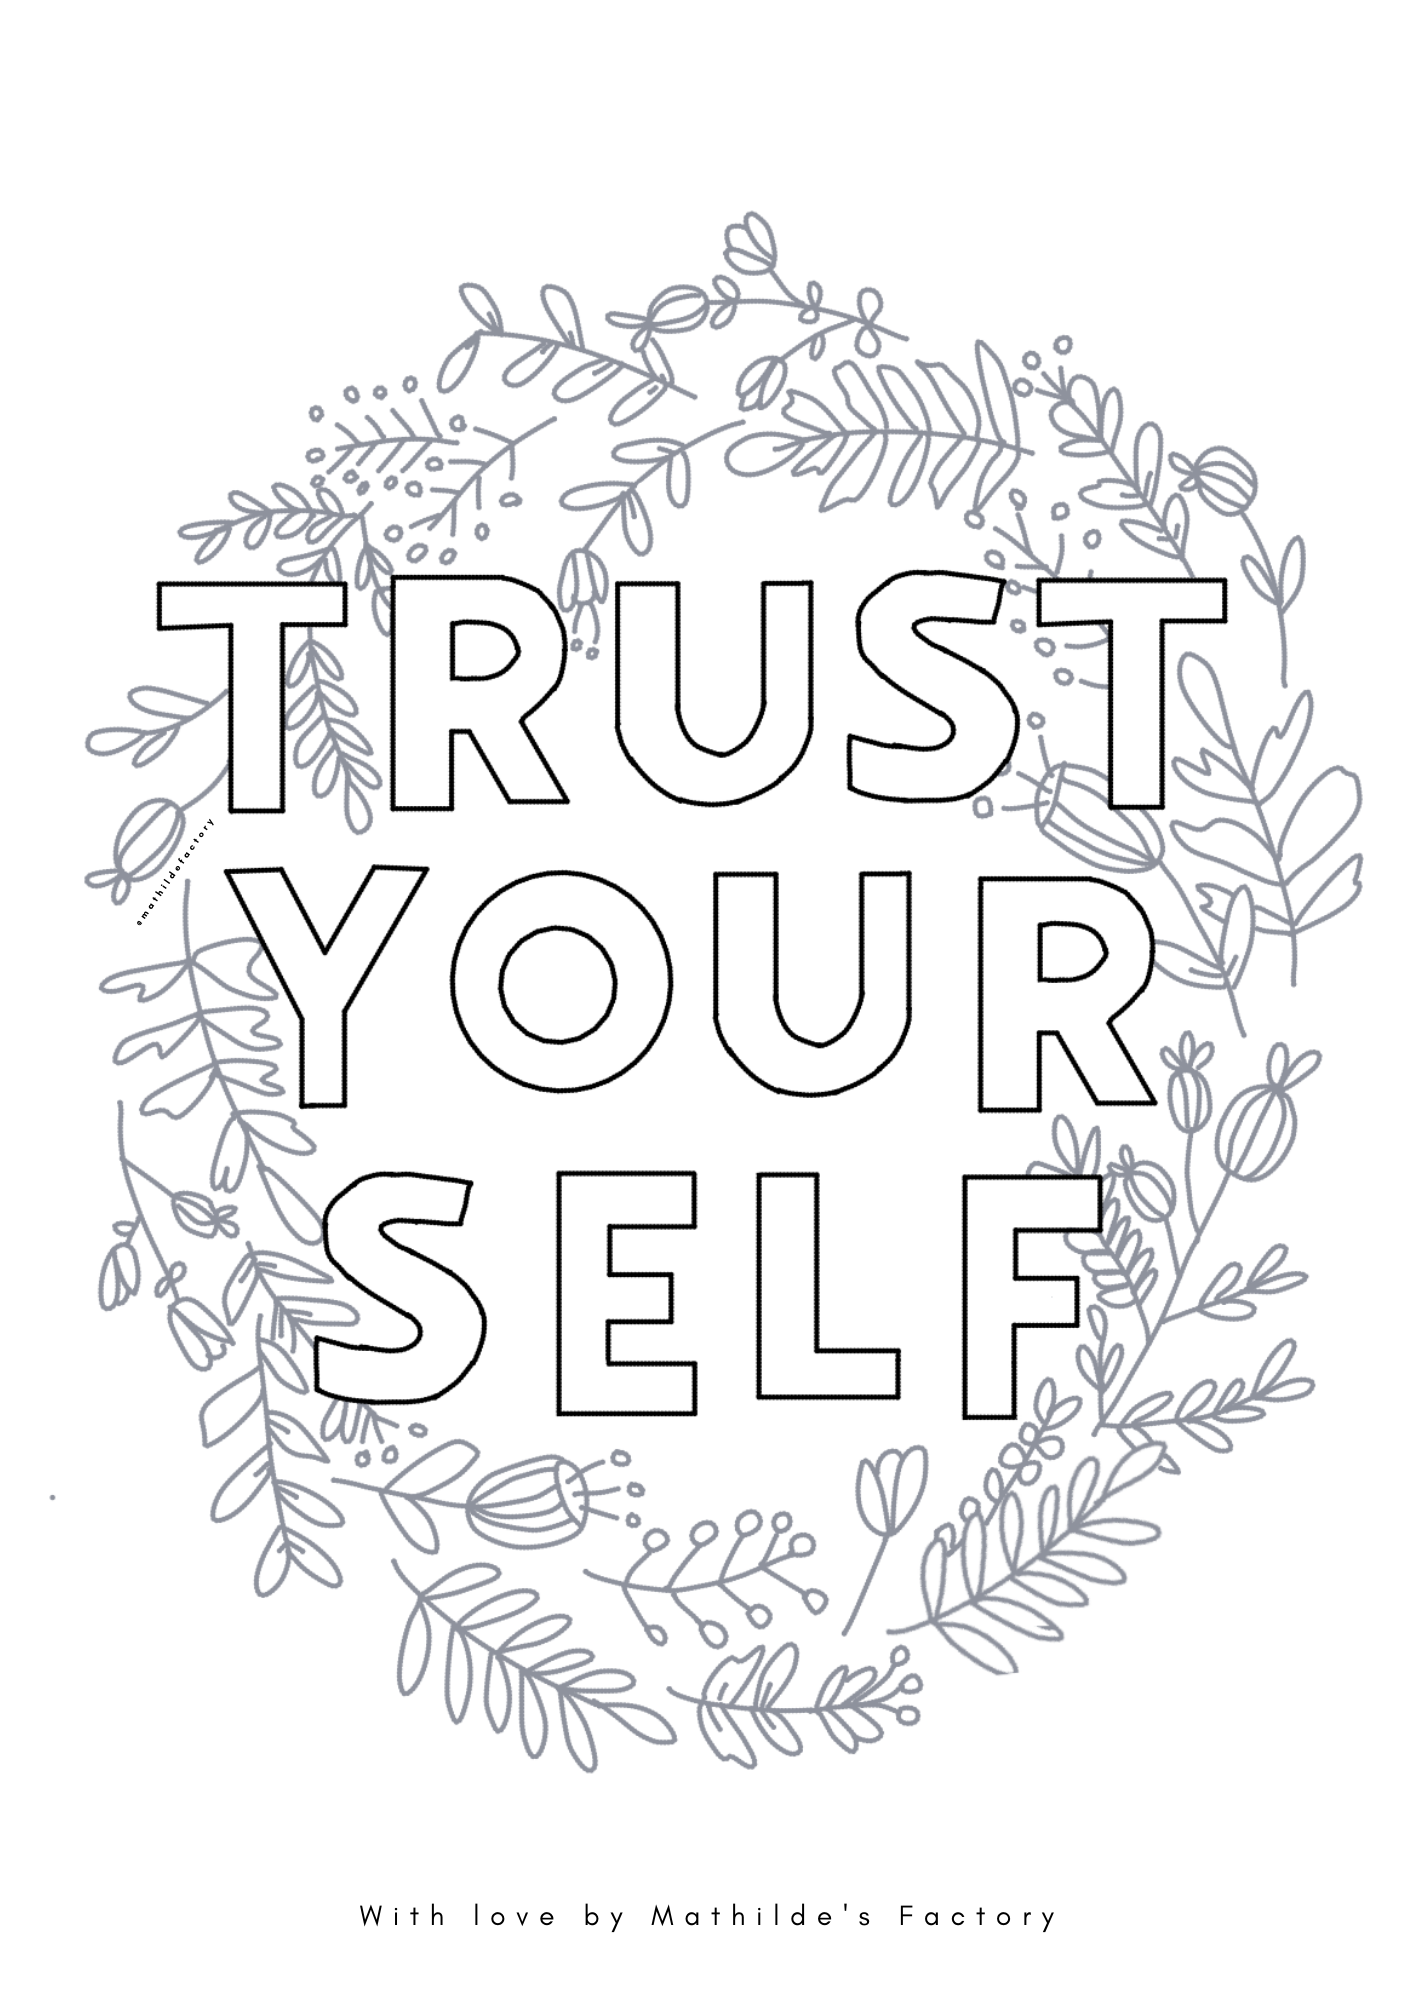 Coloriages à imprimer - try hard every day + trust yourself